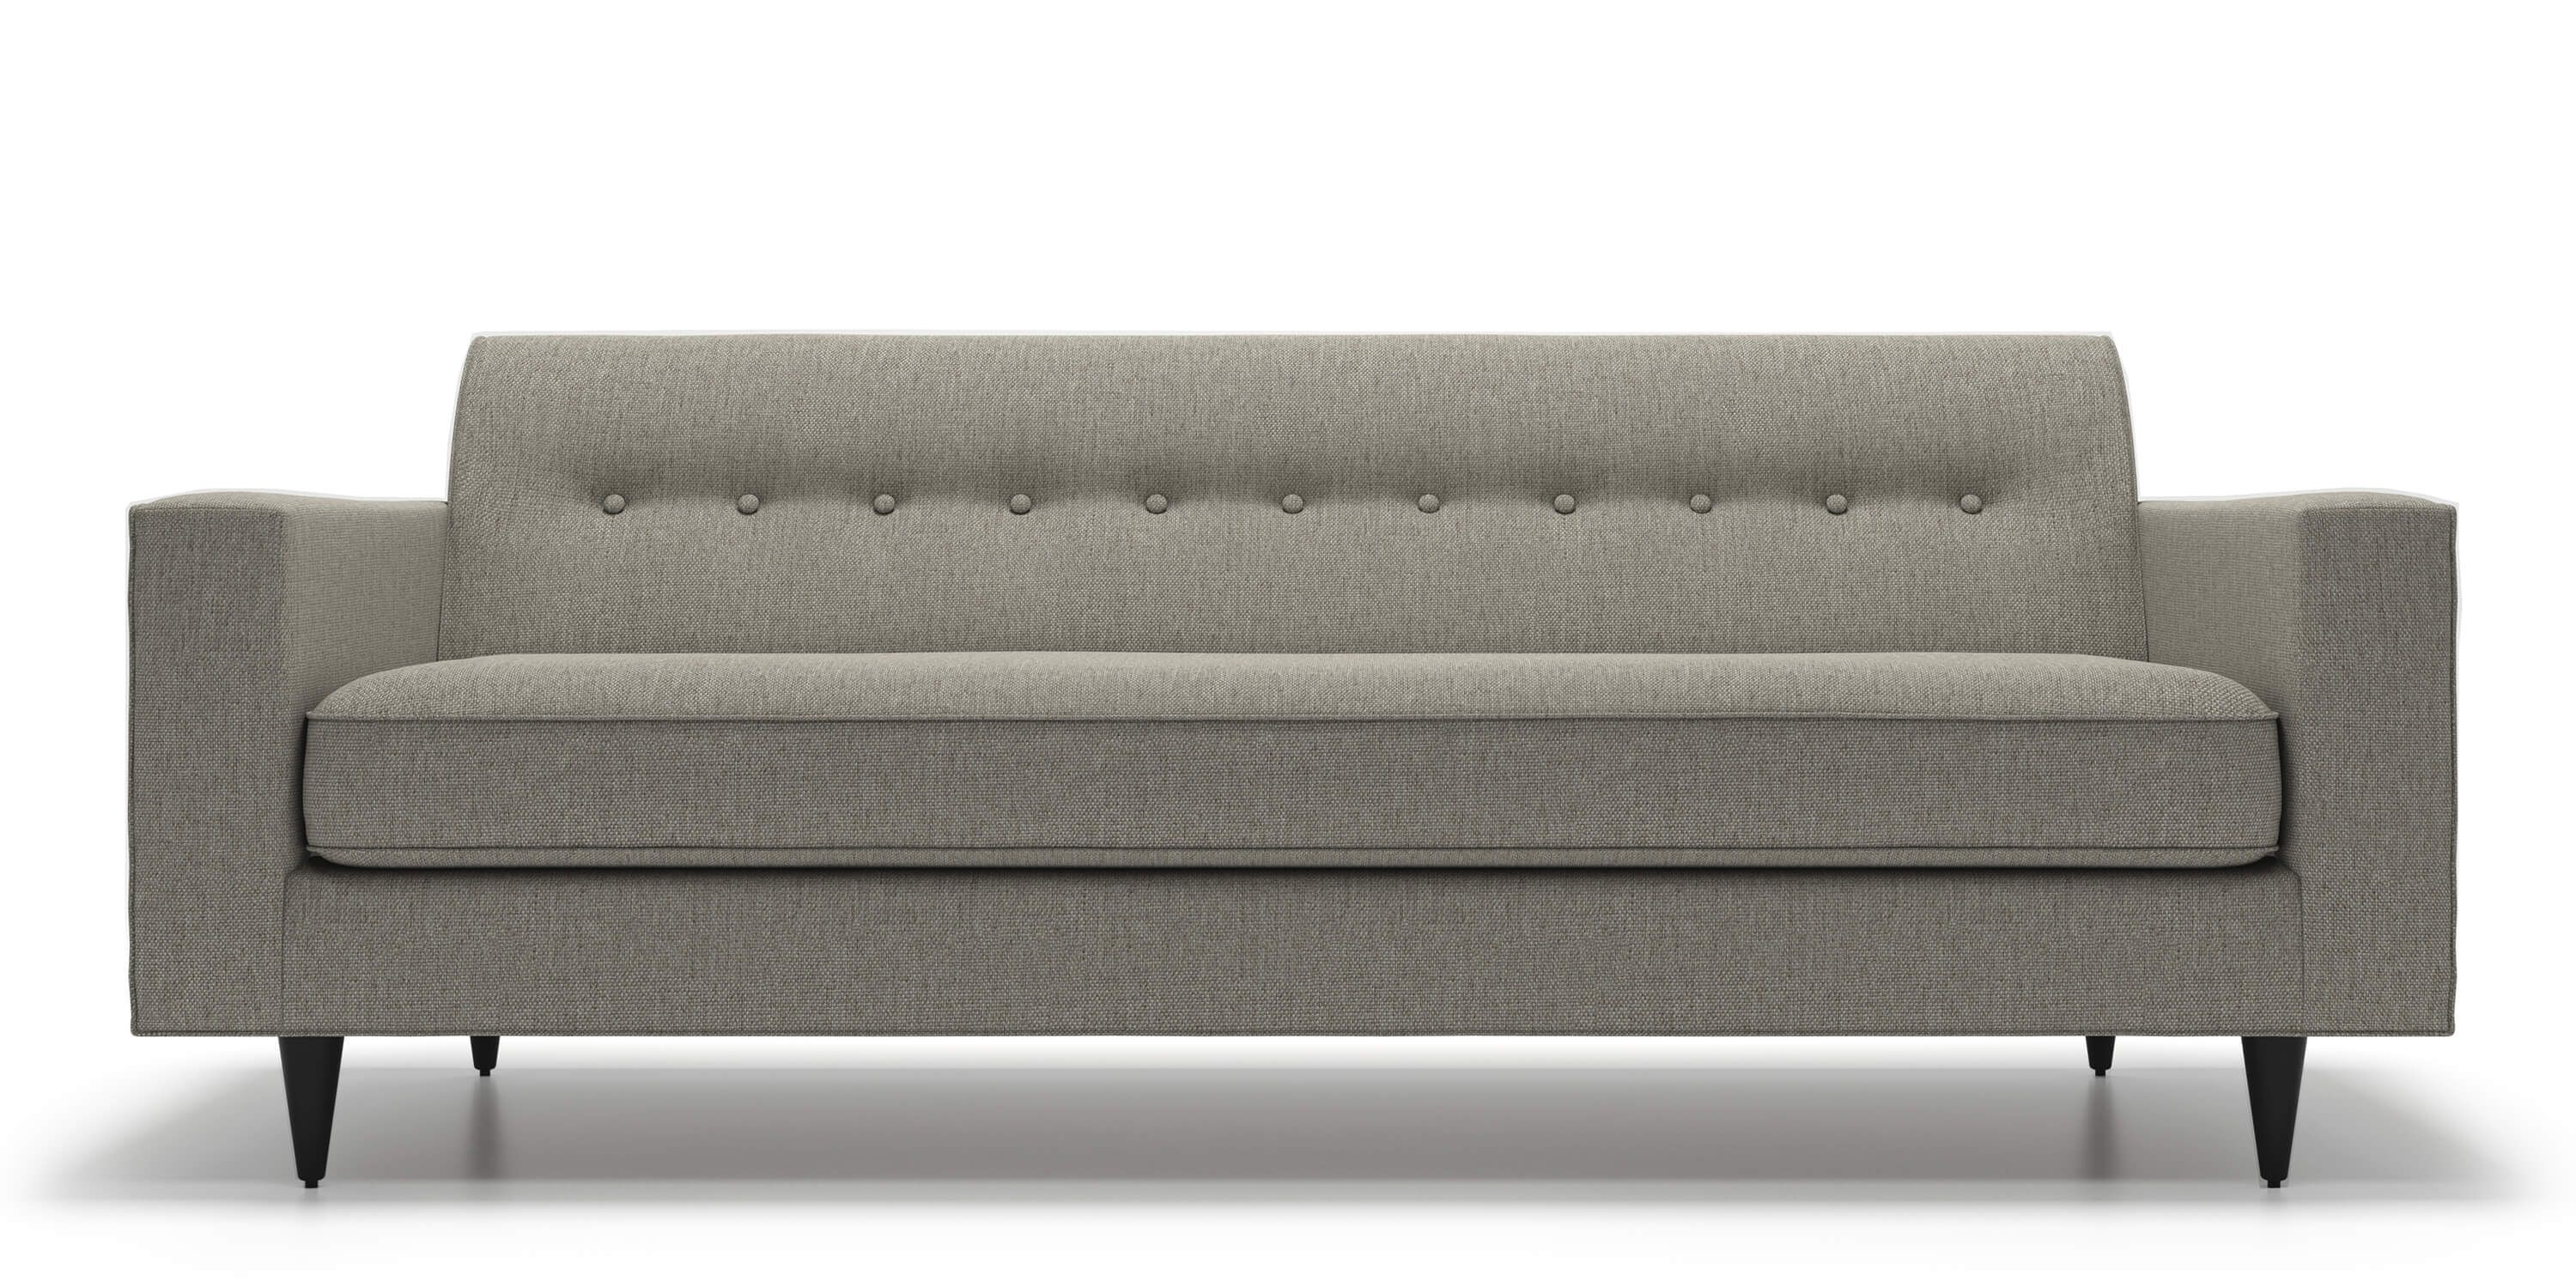 Riva Sofa in Grey Goose Fabric by Kavuus $1845 00